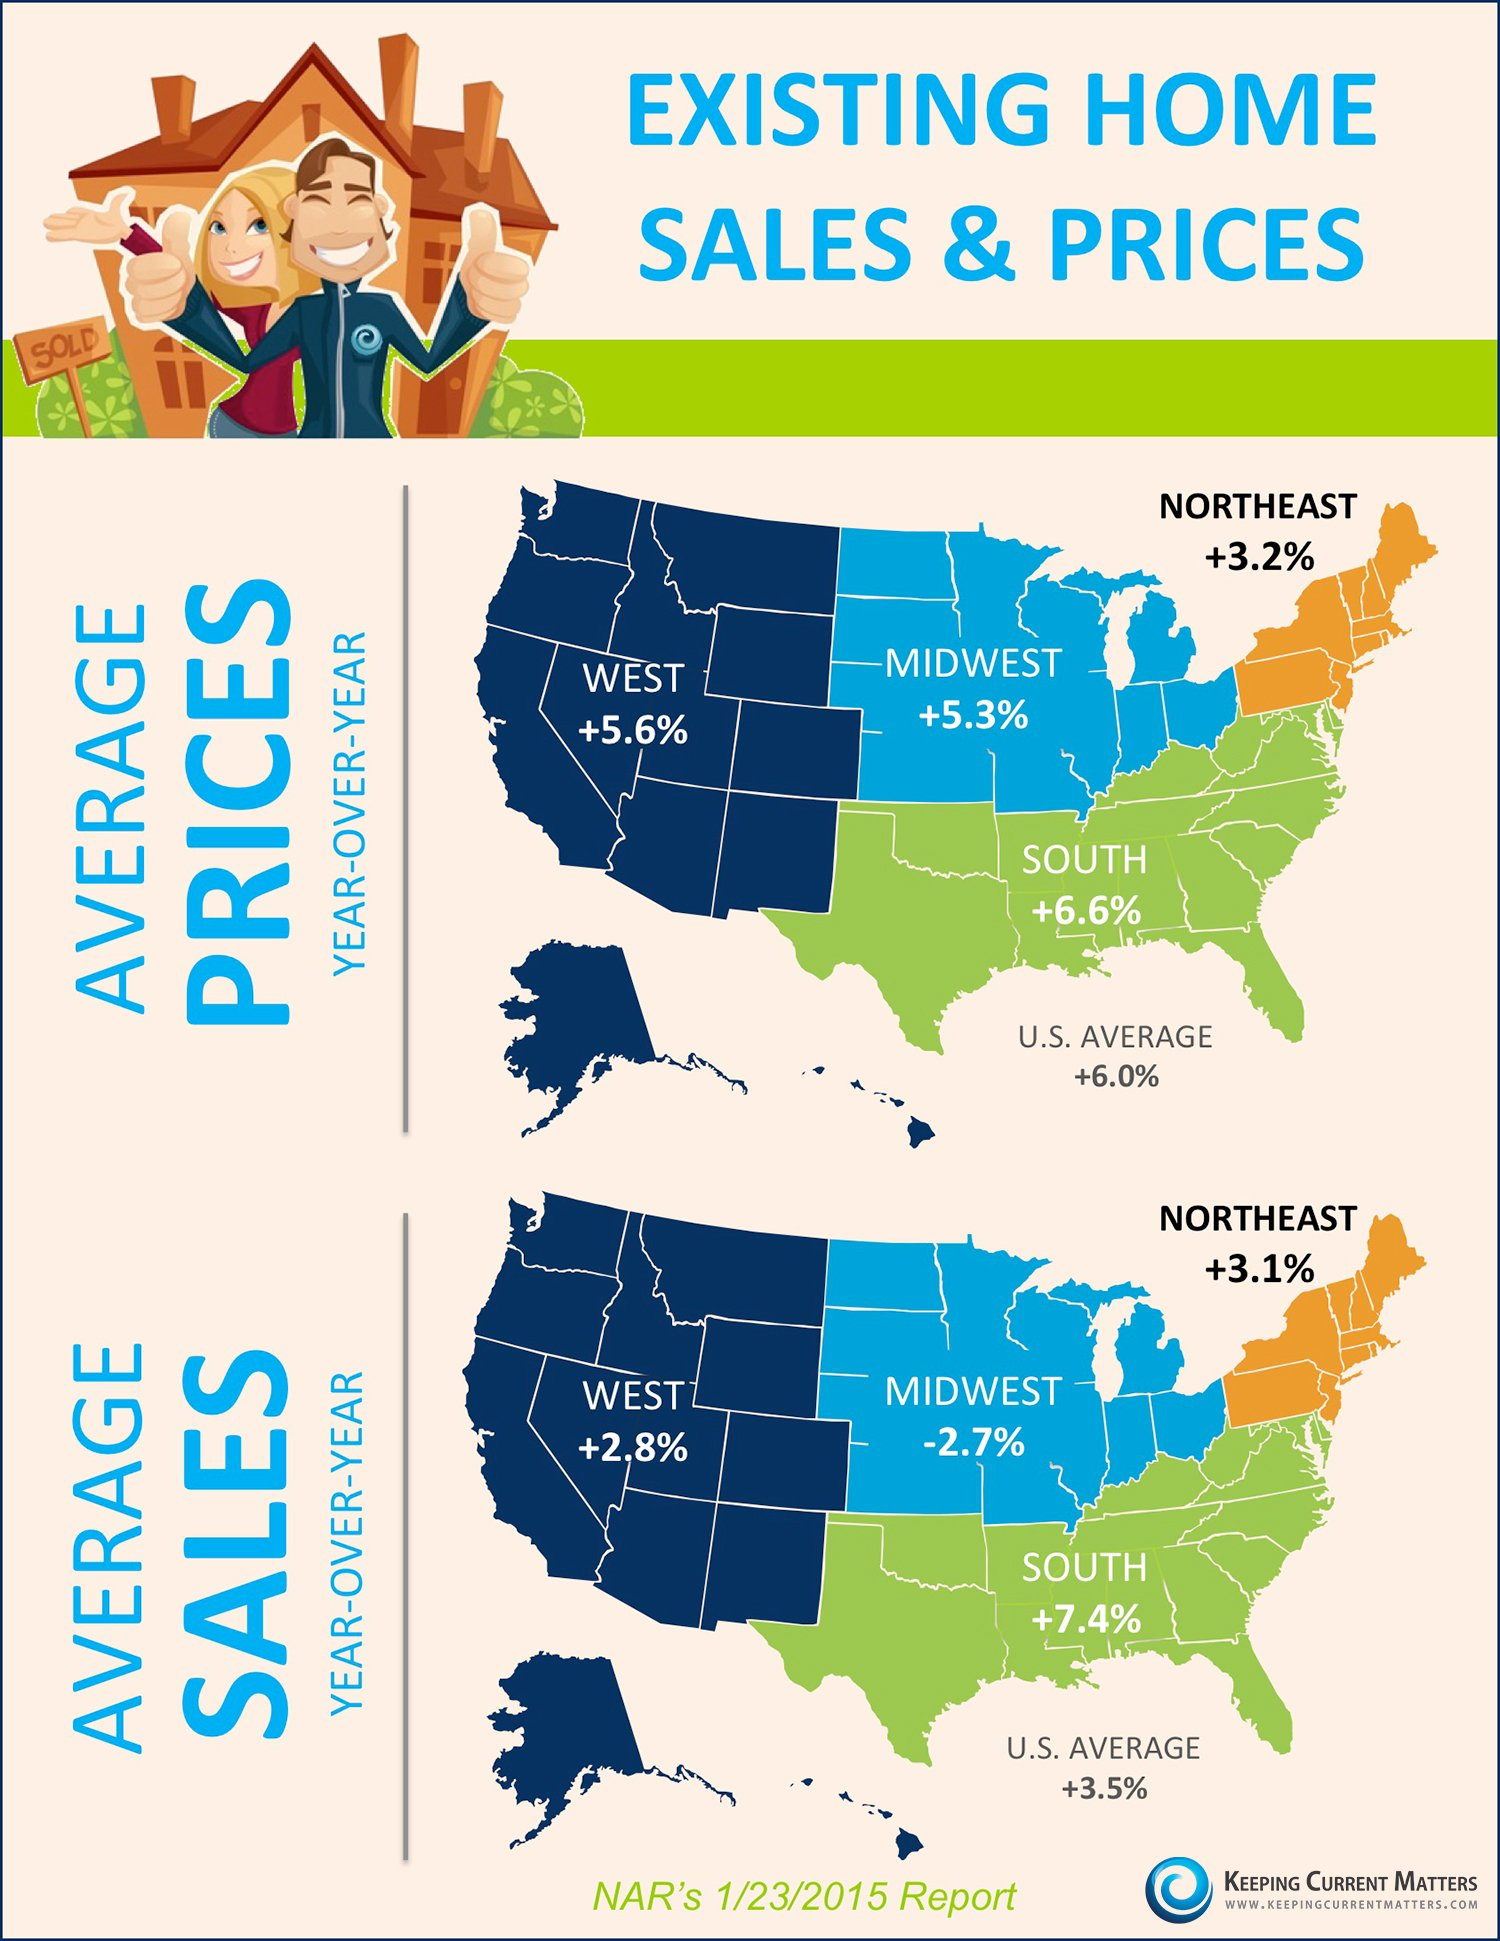 Existing Home Sales & Prices [INFOGRAPHIC]   Keeping Current Matters